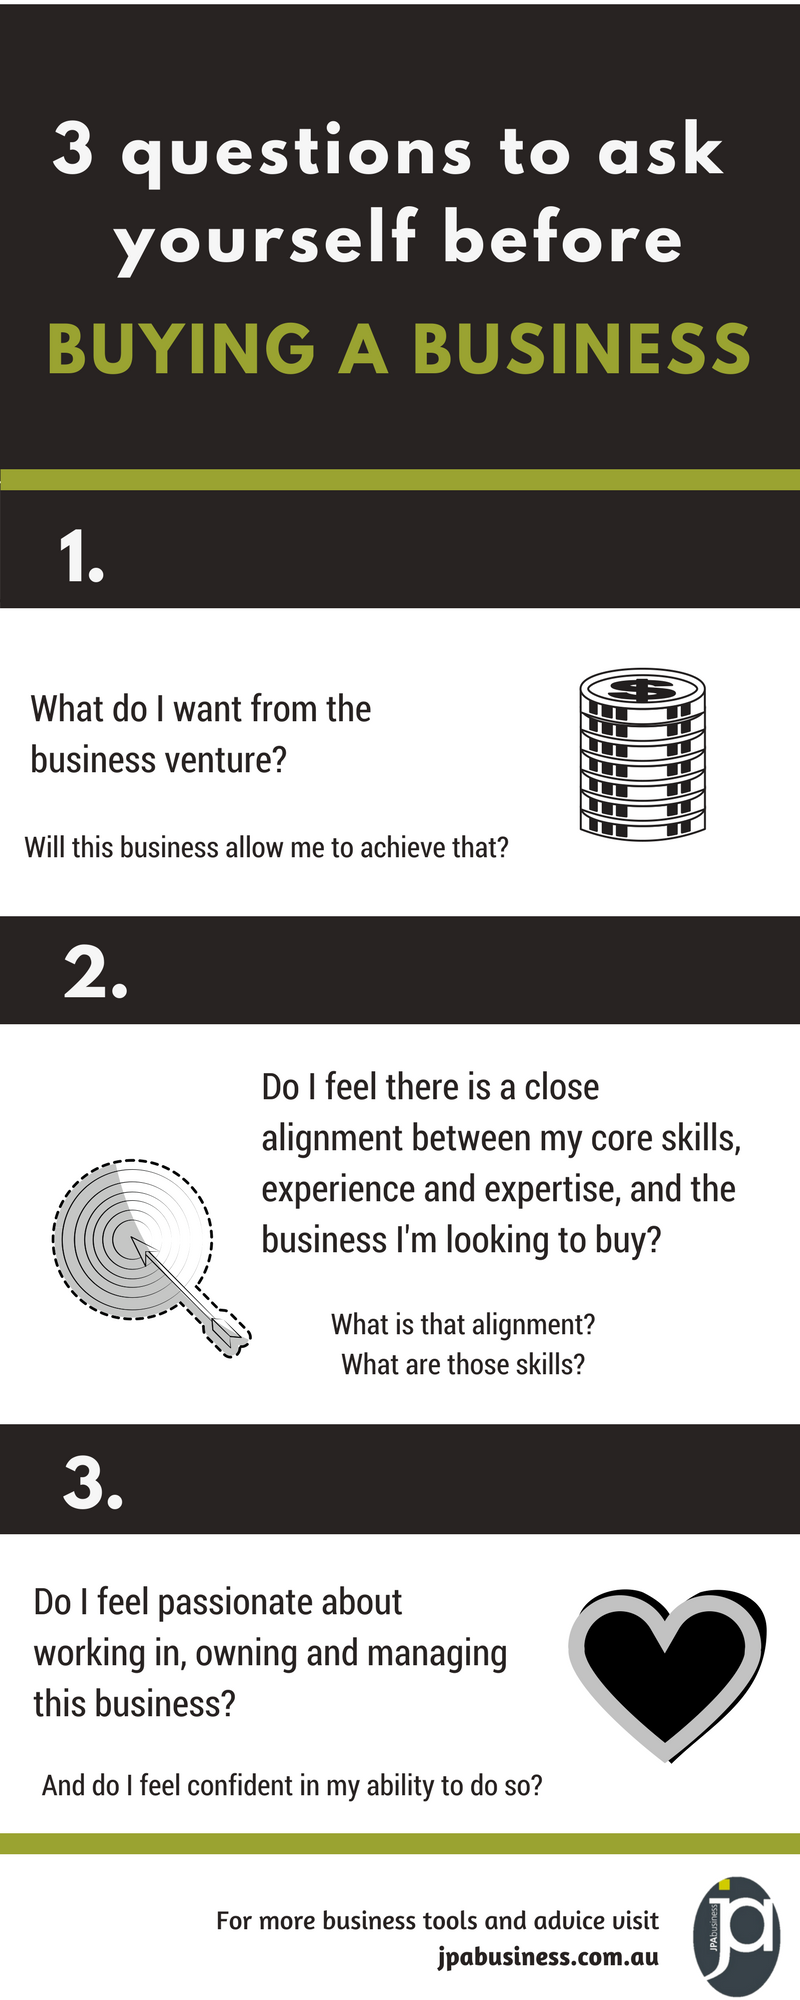 3 questions to ask yourself before buying a business.png